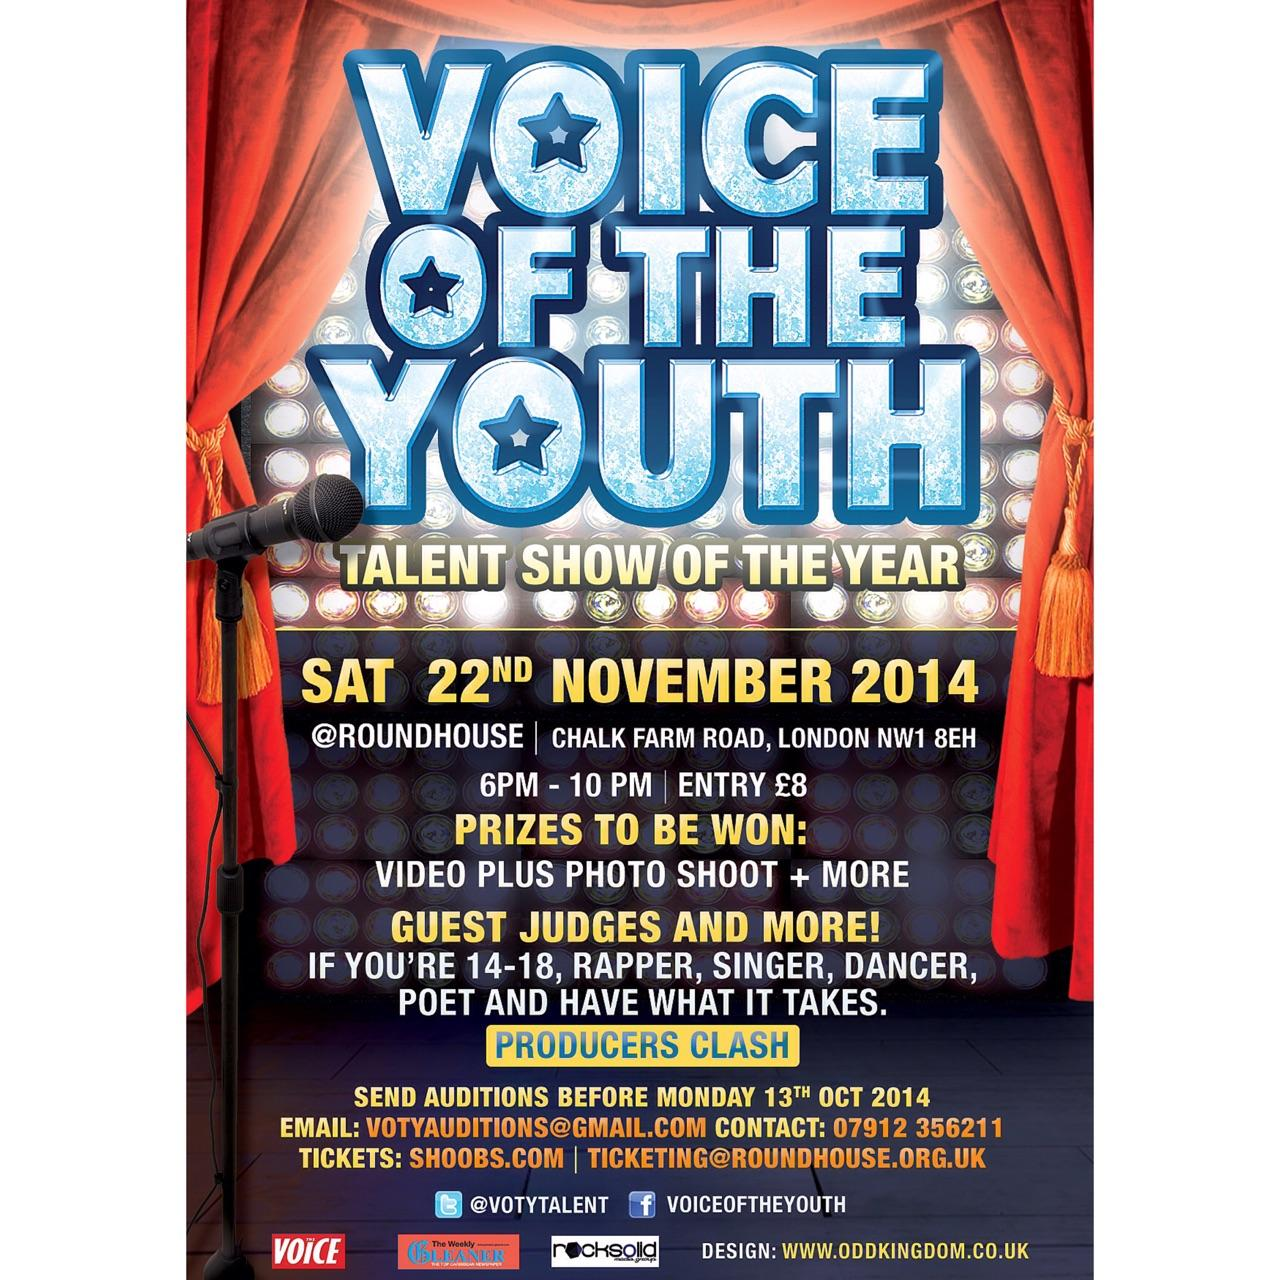 "RT @TEAMLAUGHTA_HBN: @ShabbyKatch [AGES 14-18 EVENT]""VOICE OF THE YOUTH"" @ THEROUNDHOUSE 22ND NOV. Ticket's-> http://t.co/IeqEvoTfMi  http:…"